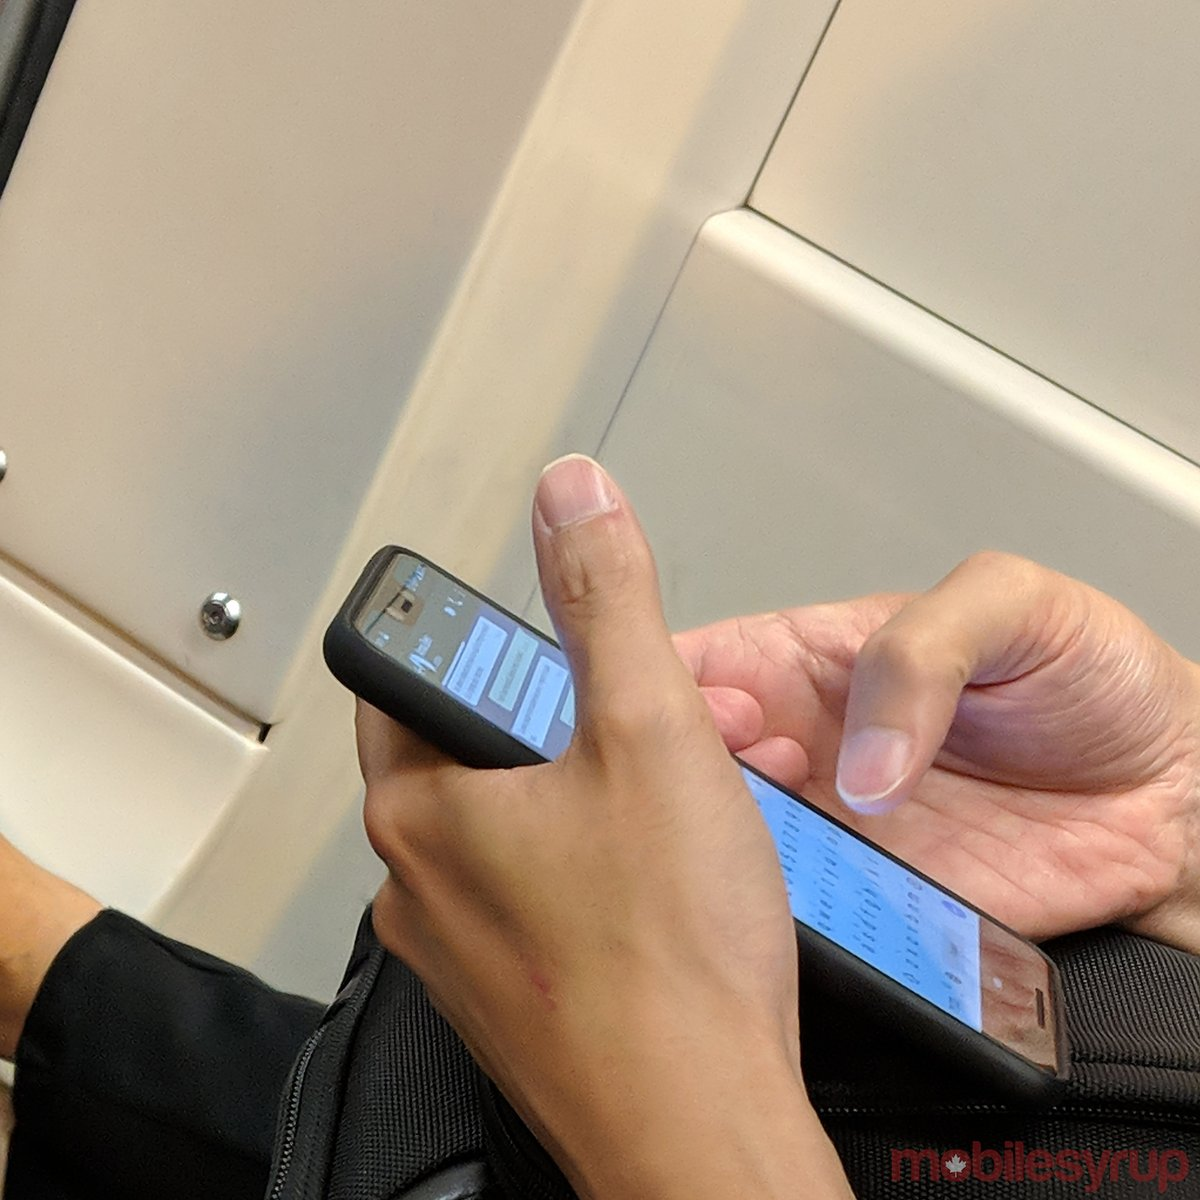 Pixel 3 XL spotted on a streetcar